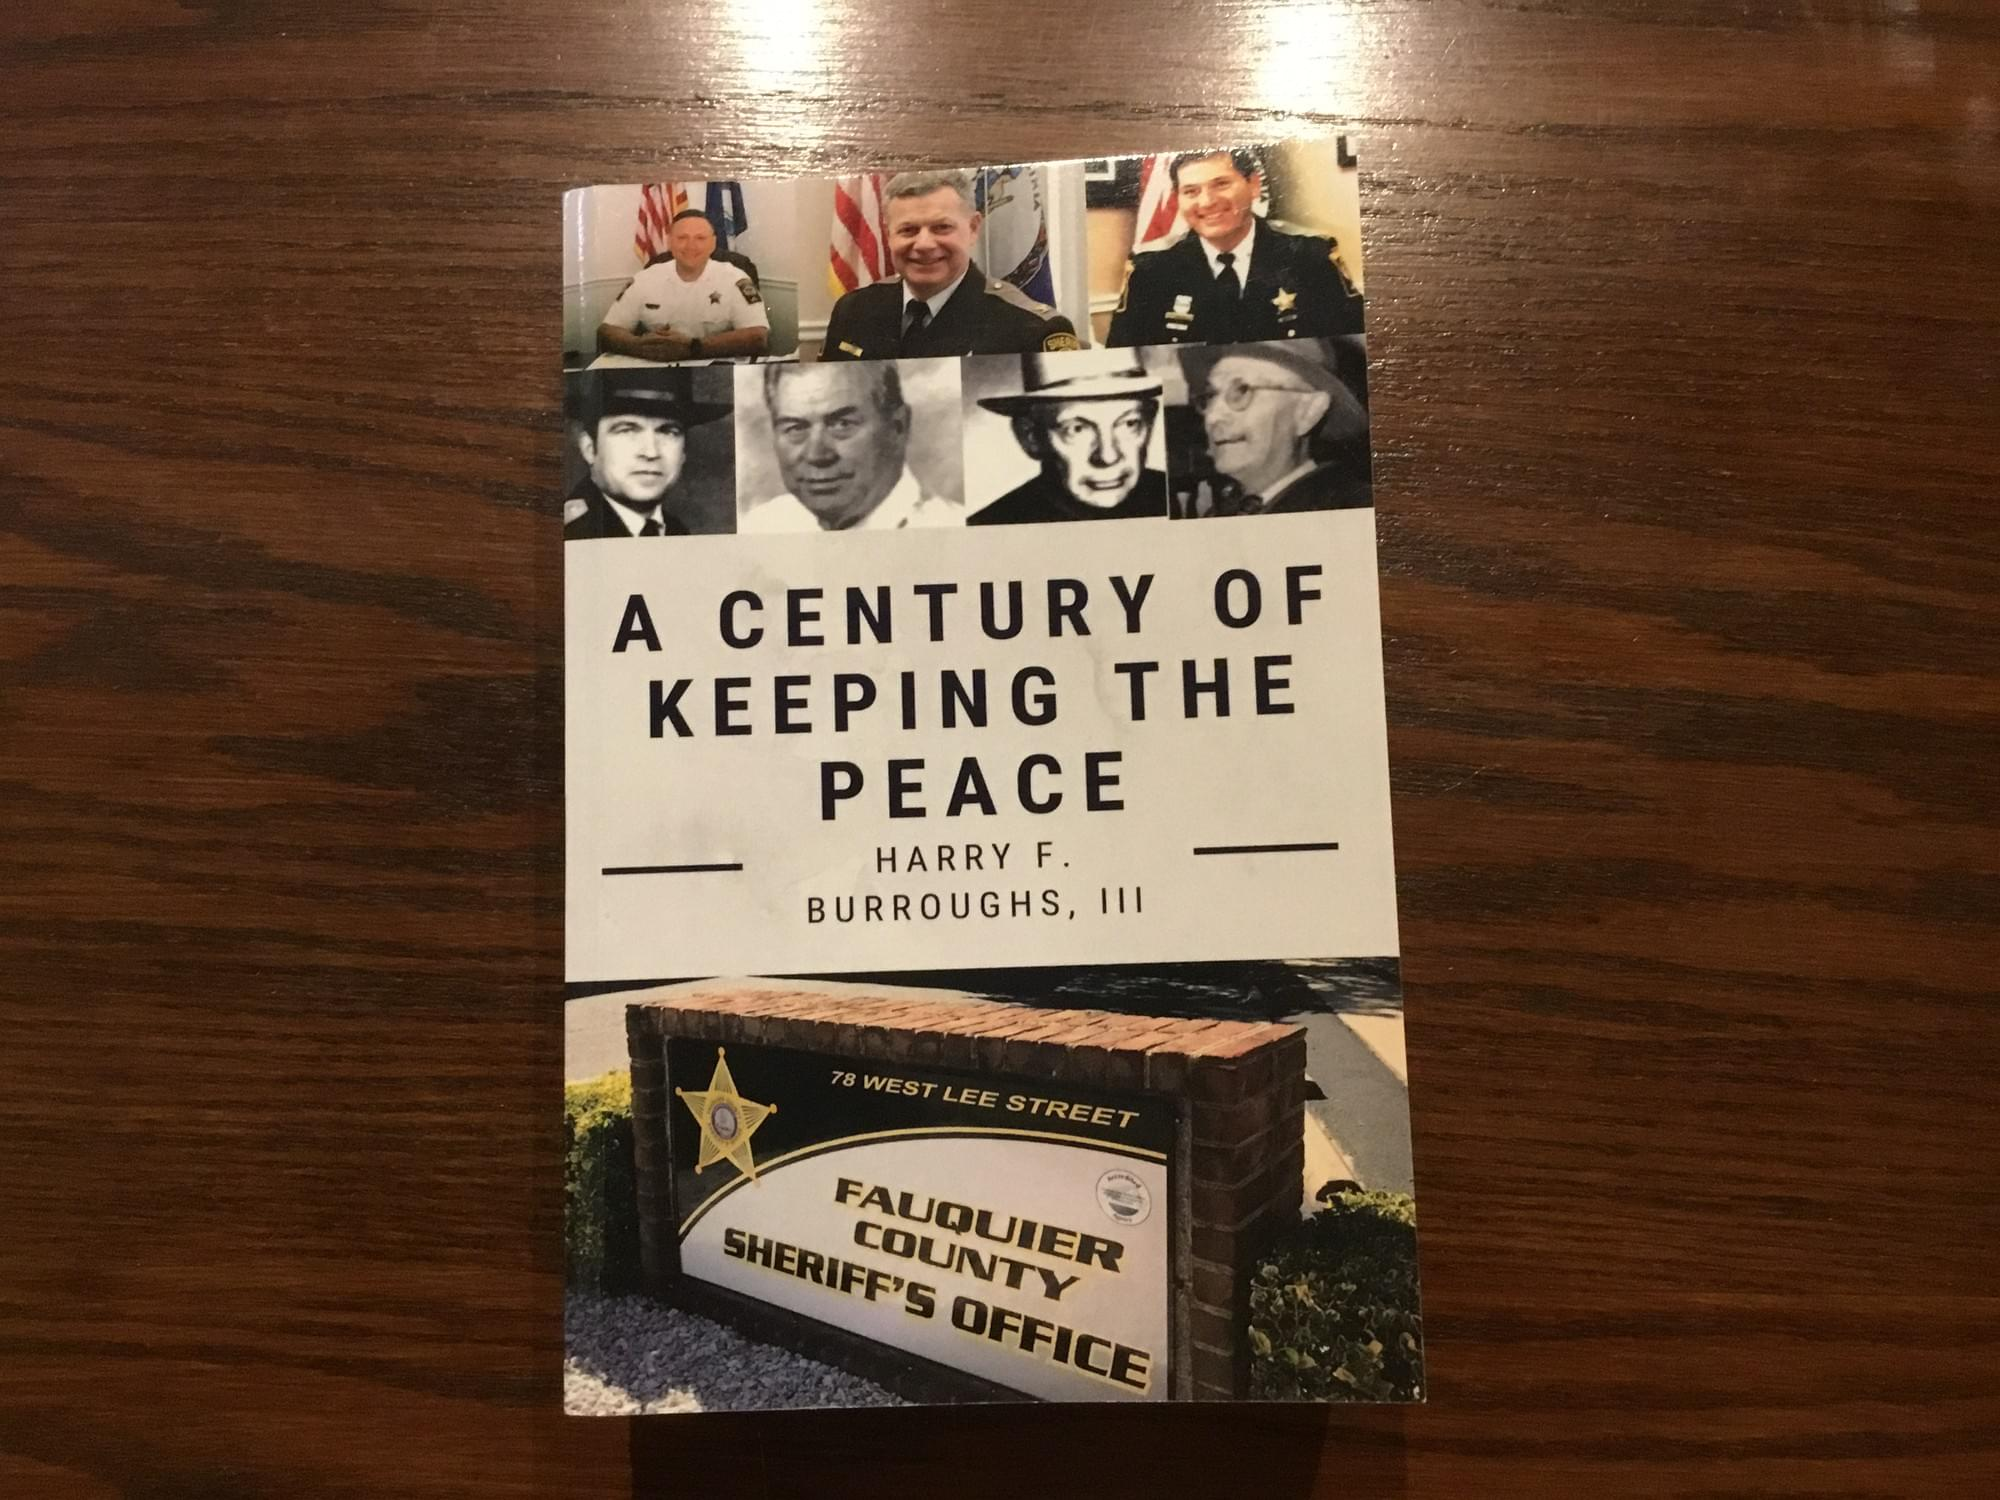 A Century of Keeping the Peace